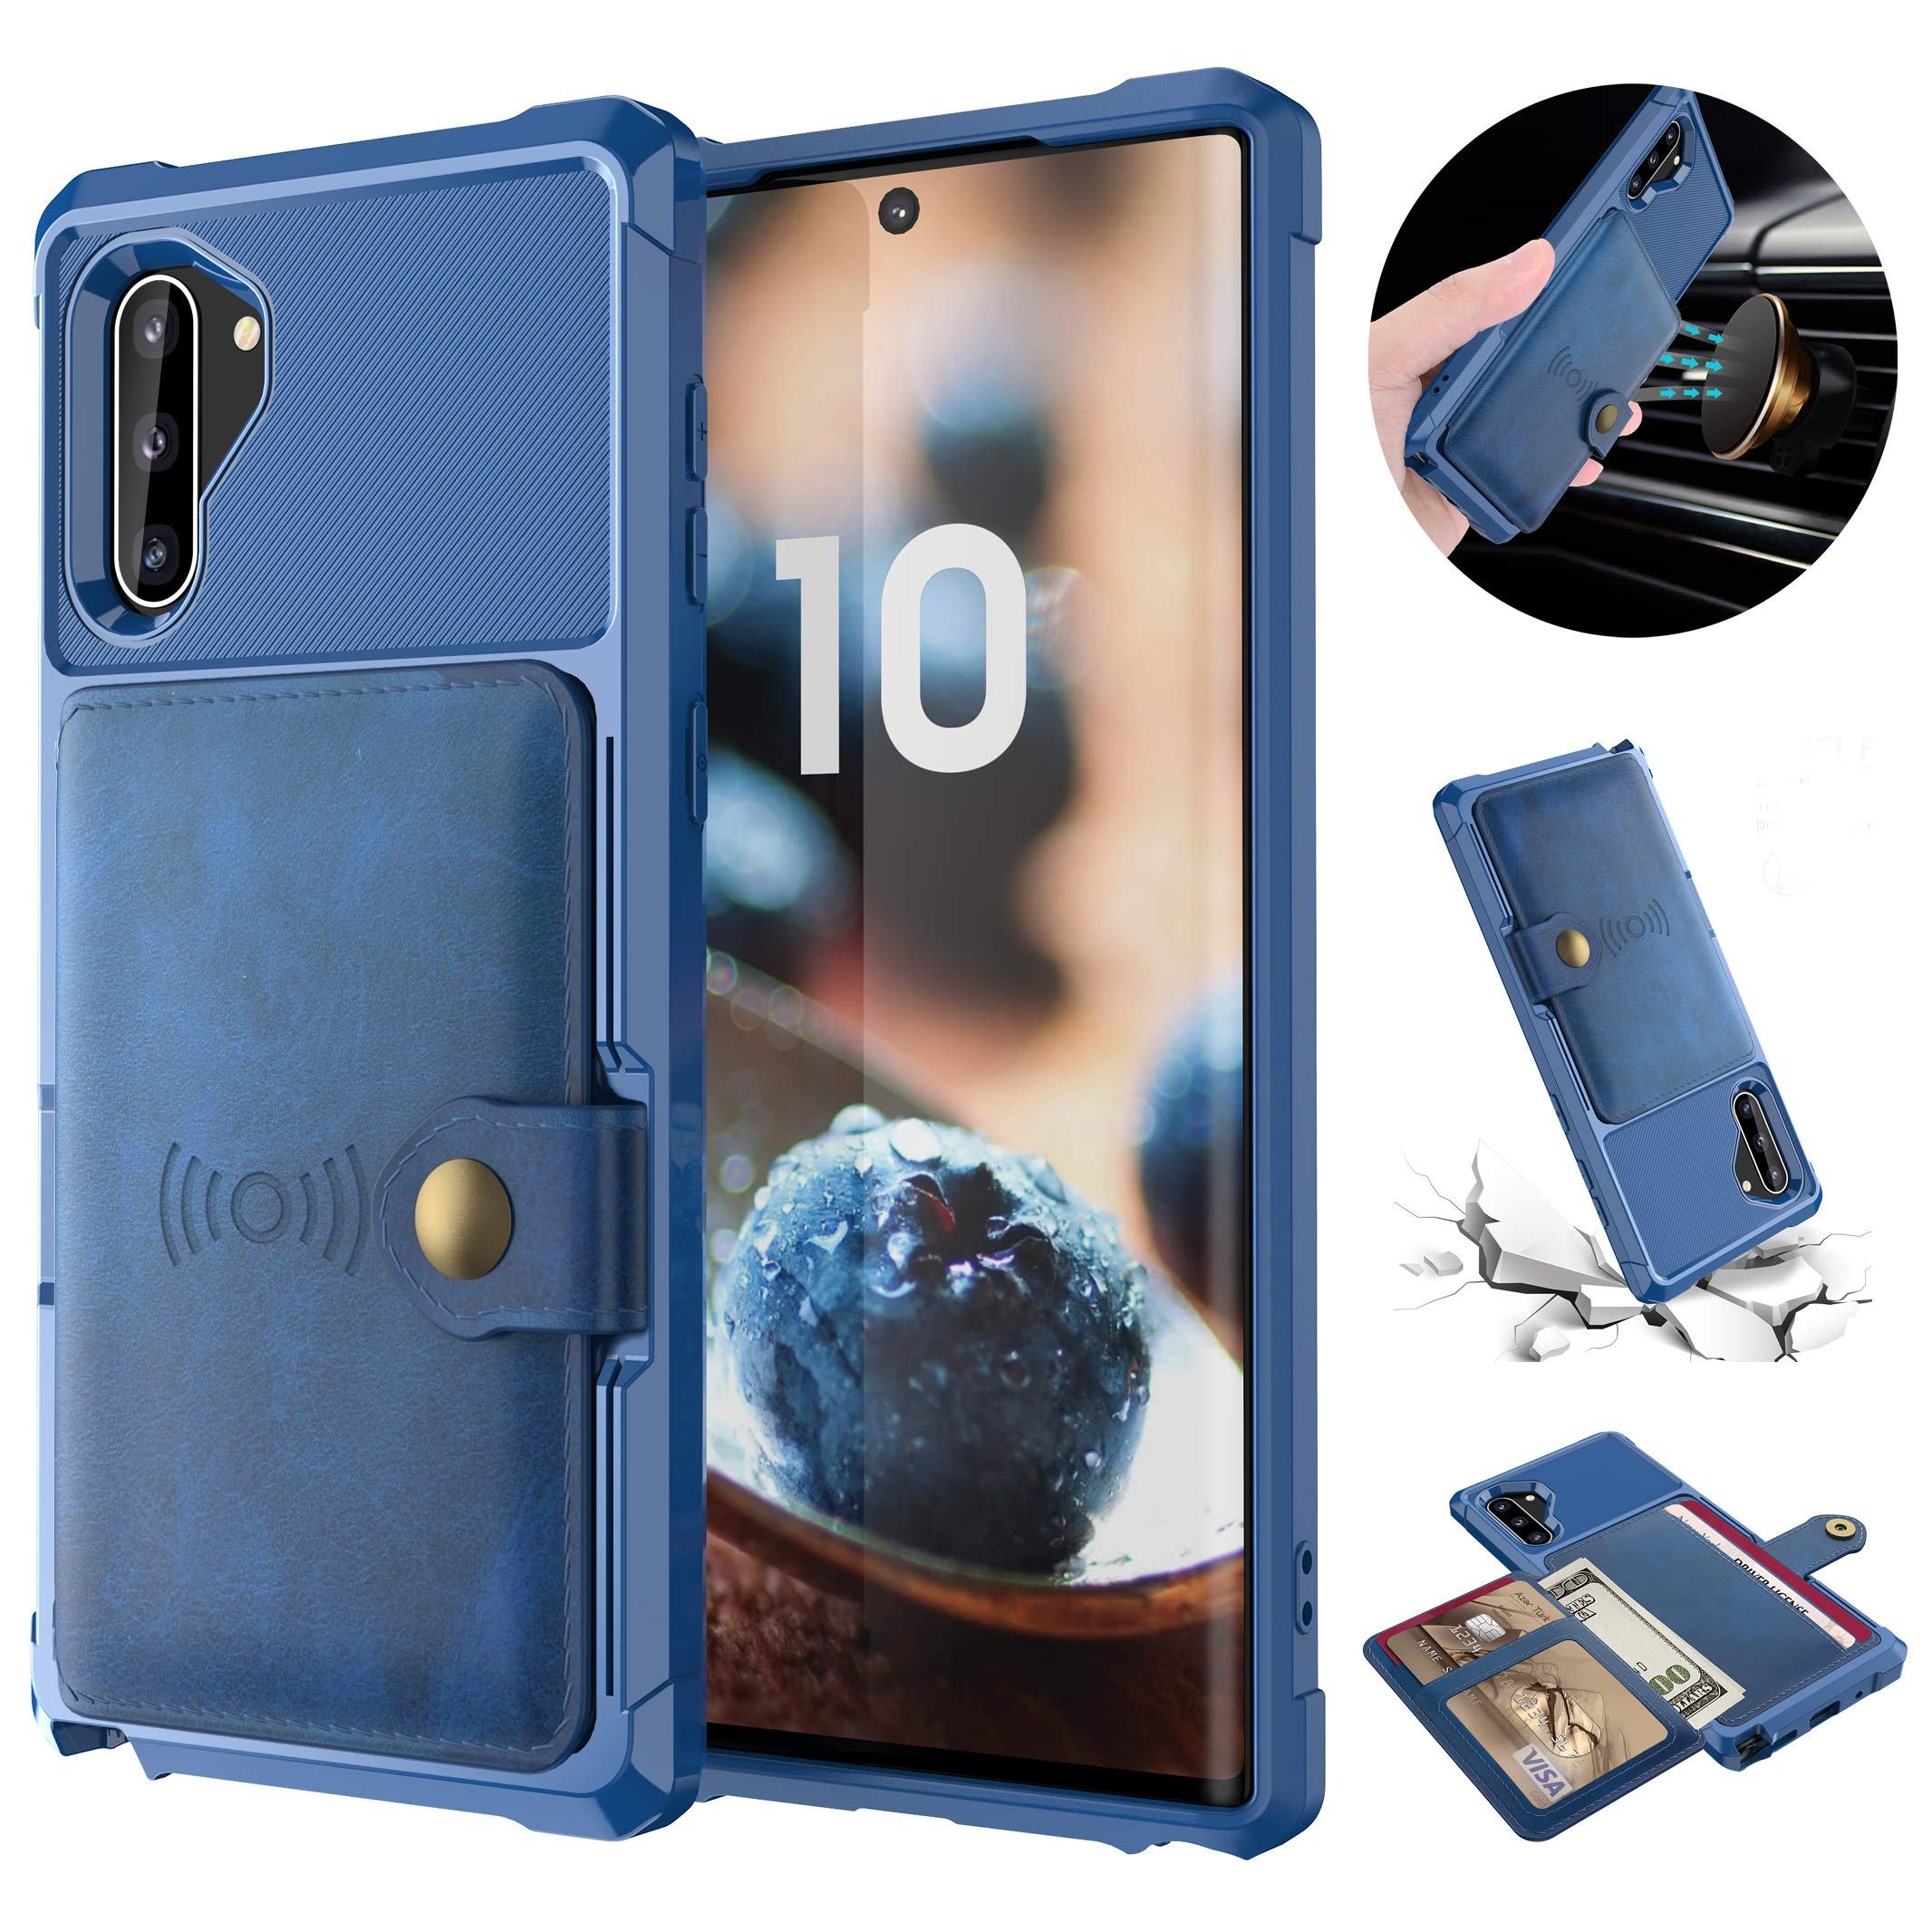 Tznzxm Galaxy Note 10 Wireless Charging Wallet Case with Credit Card Kickstand Rubber Buttons [Work with Magnetic Car Mount] Durable Flip Shockproof Protective Cover for Samsung Galaxy Note 10 Blue by Tznzxm